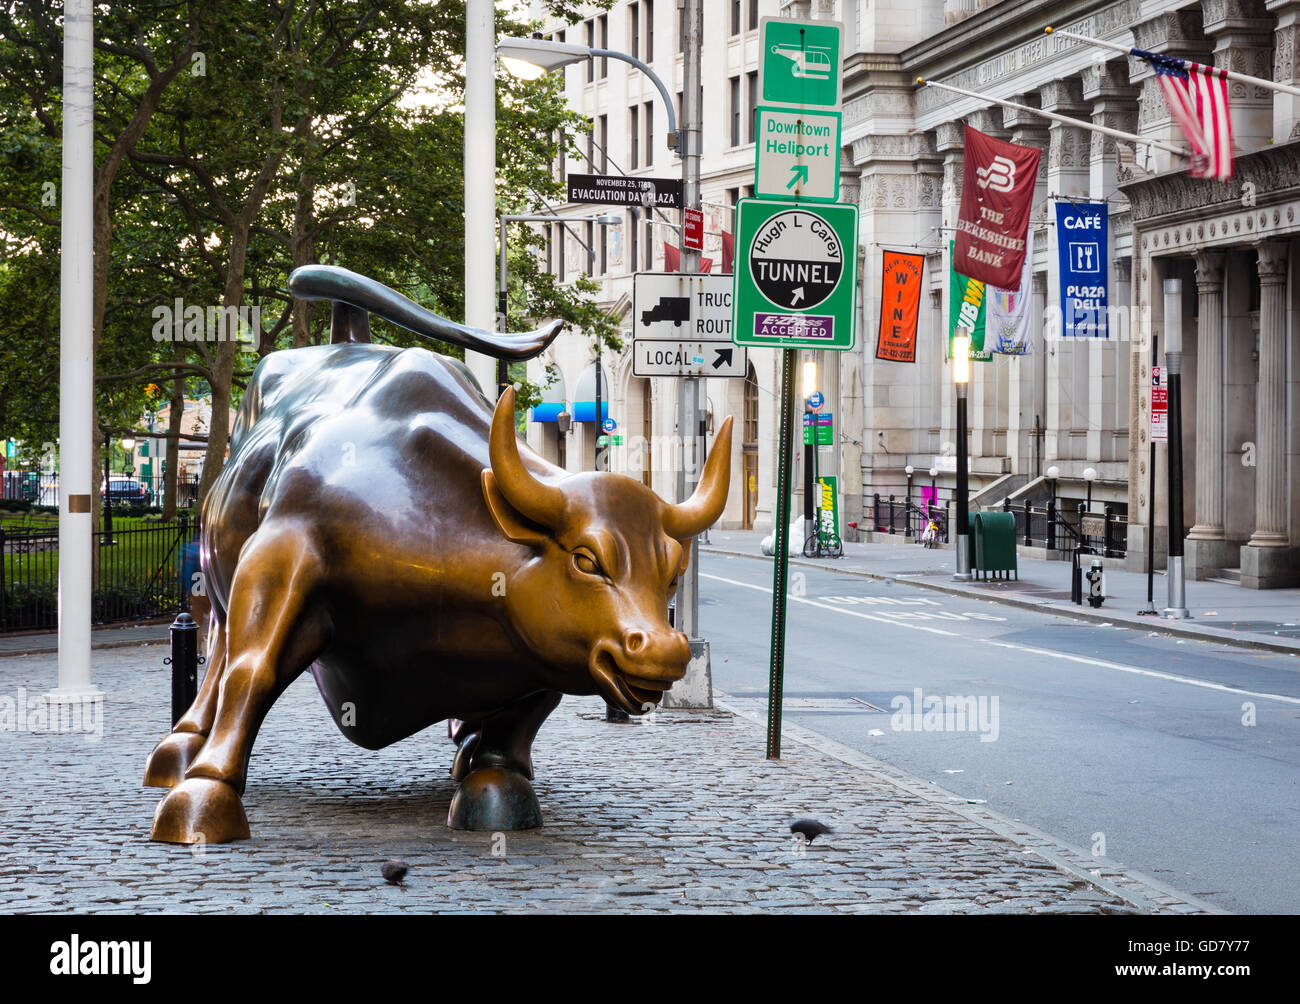 Charging Bull in the financial district of New York City, near Wall Street - Stock Image